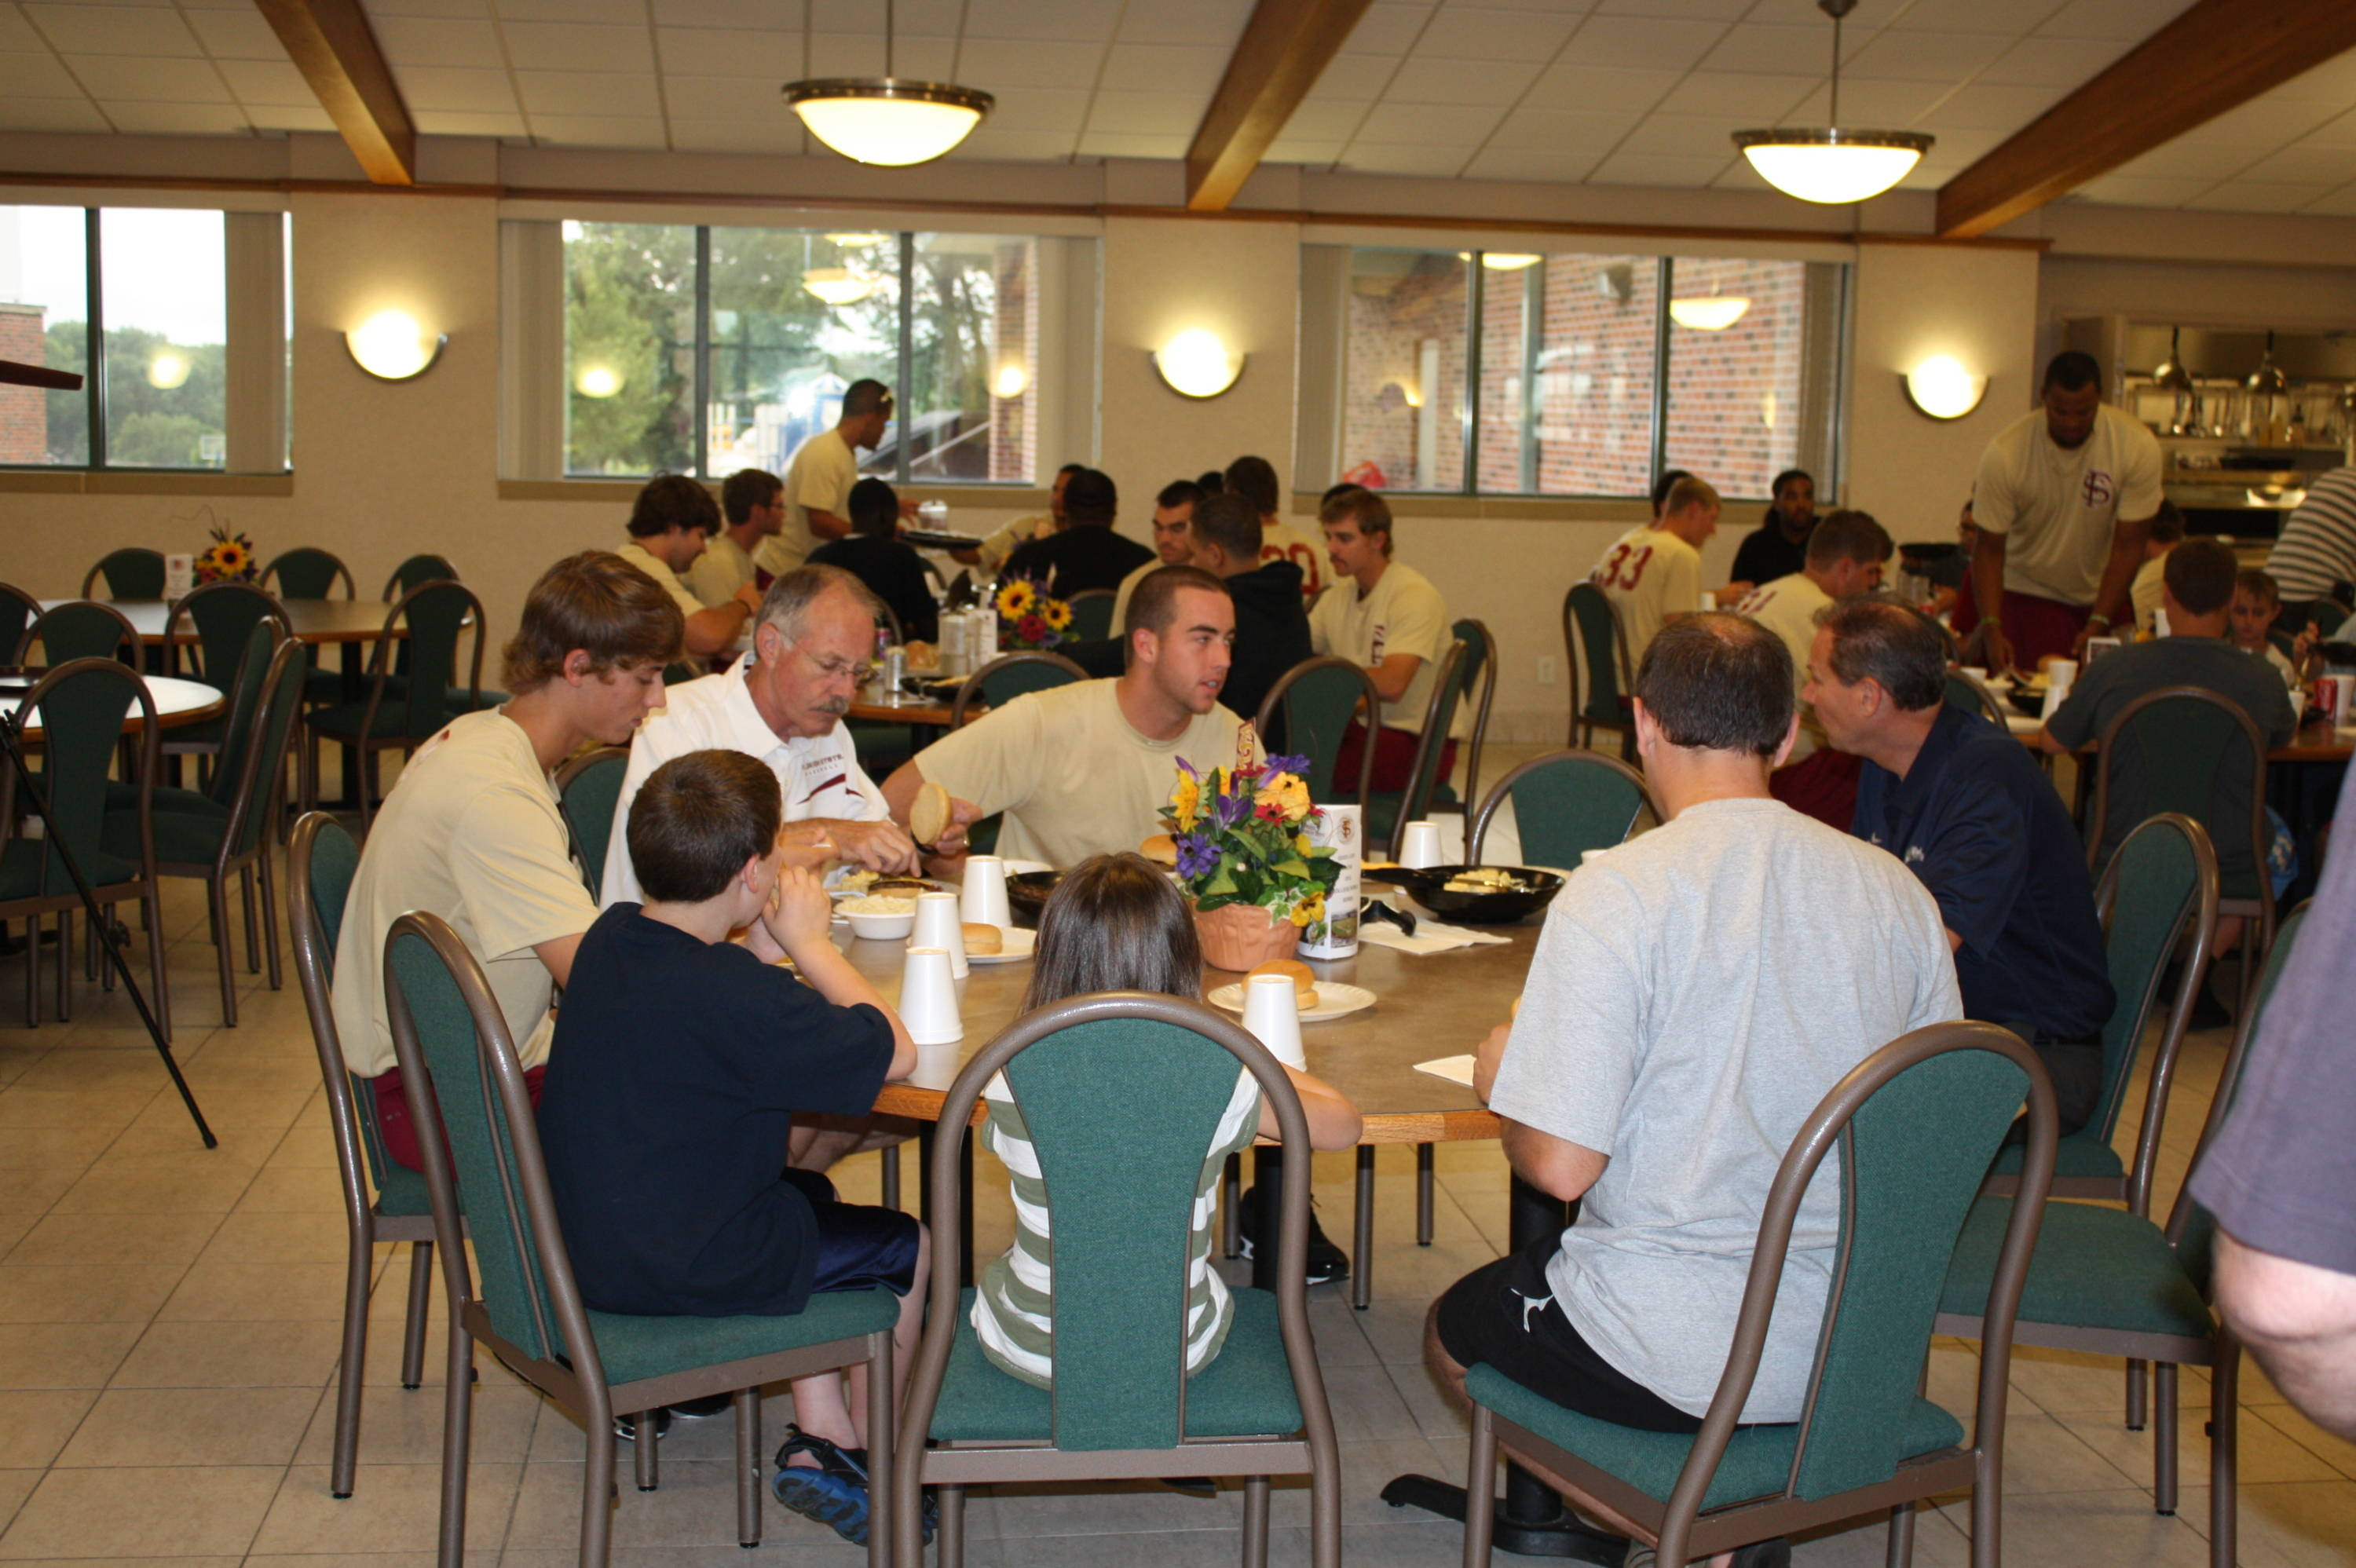 Florida State Baseball visits the Omaha Home for Boys on Saturday, June 16. The Seminoles enjoying lunch.